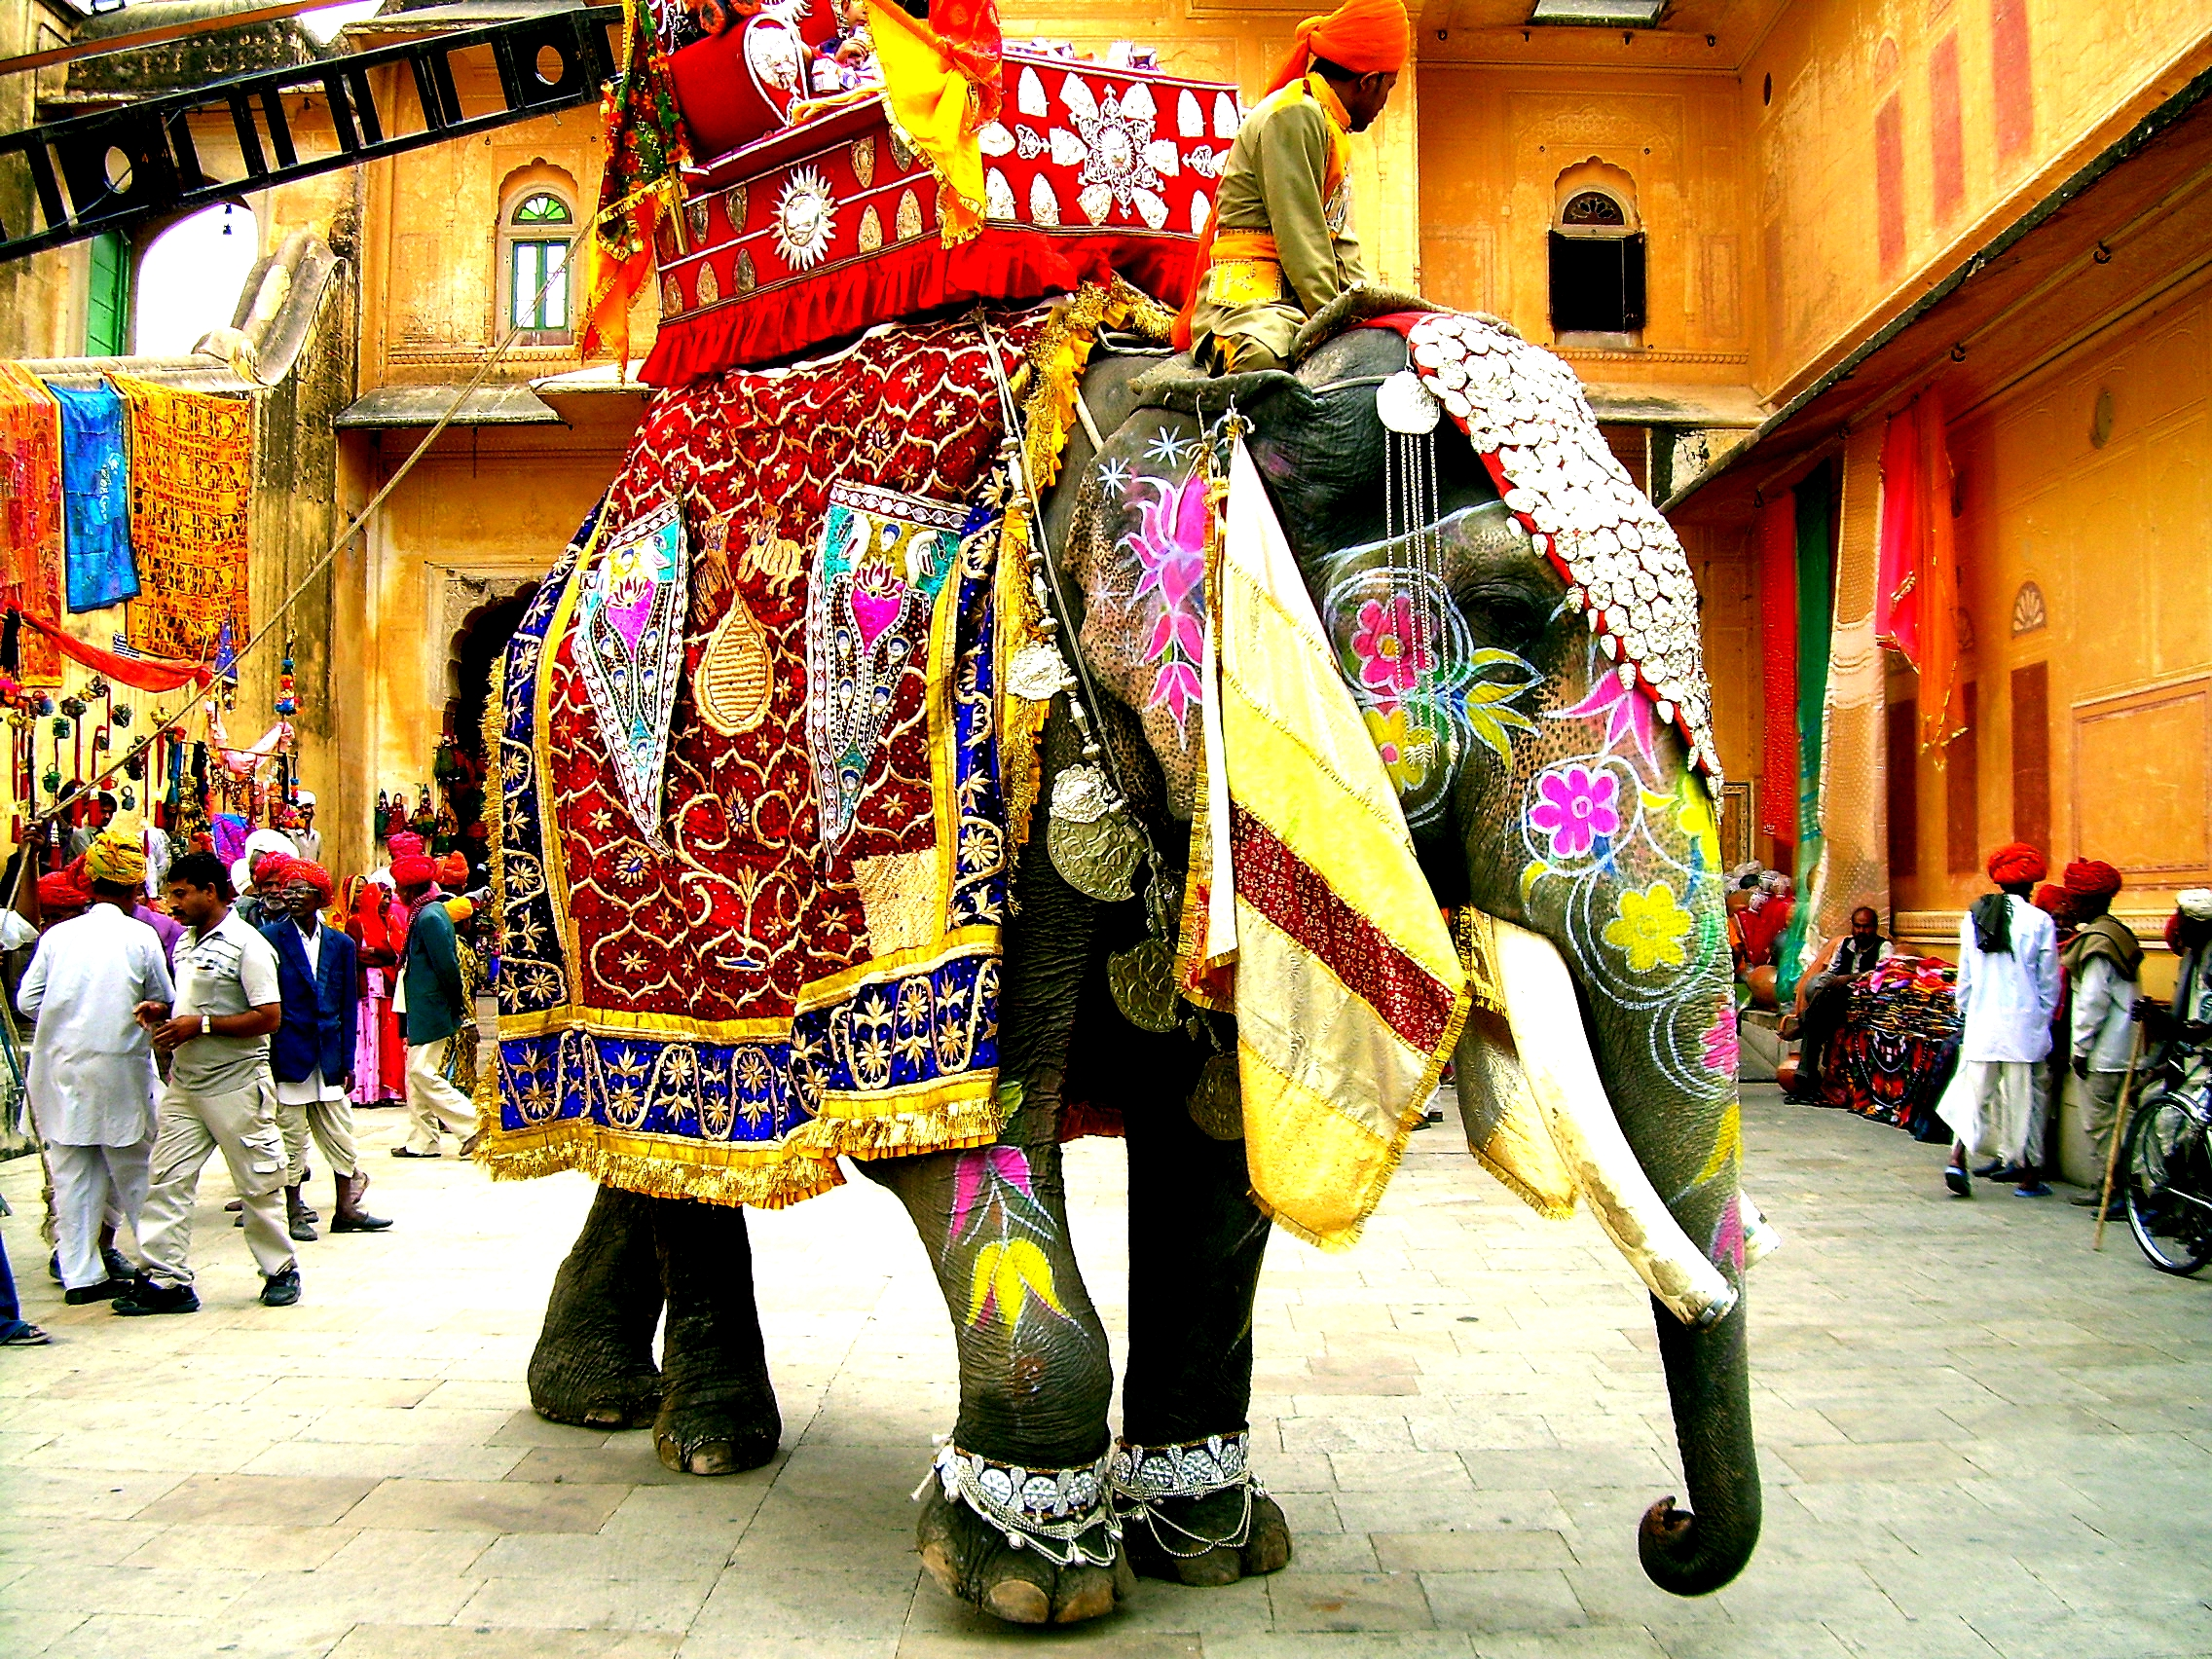 Decorated_Indian_elephant.jpg